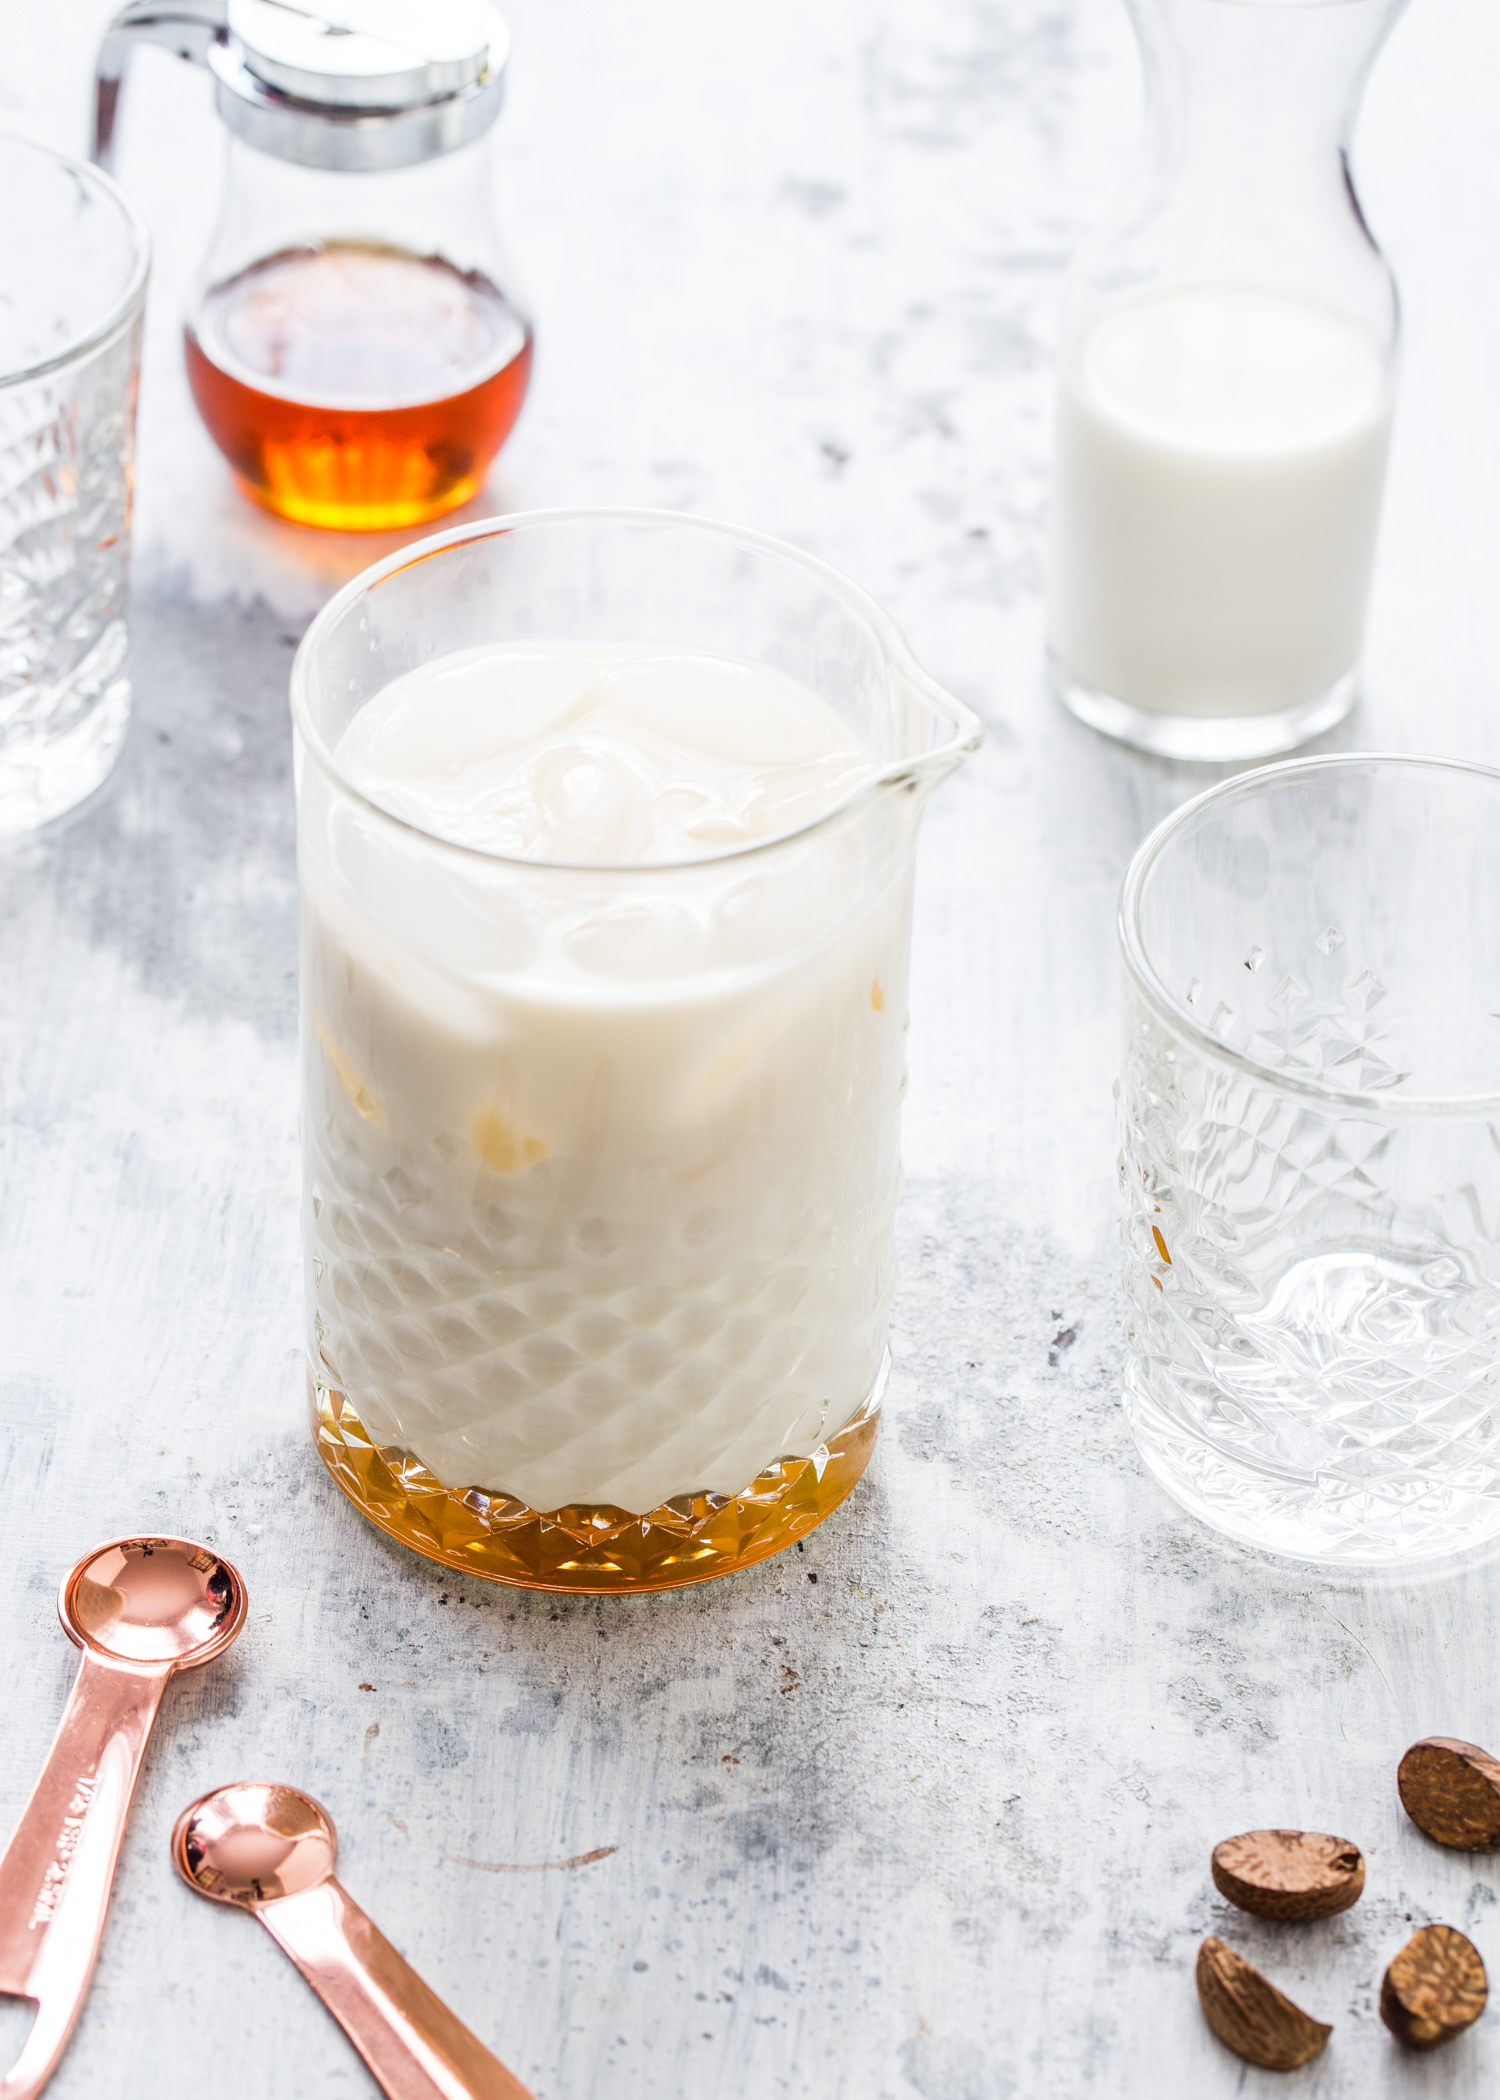 Milk Punch Two Ways - Served over ice for a crisp winter cocktail